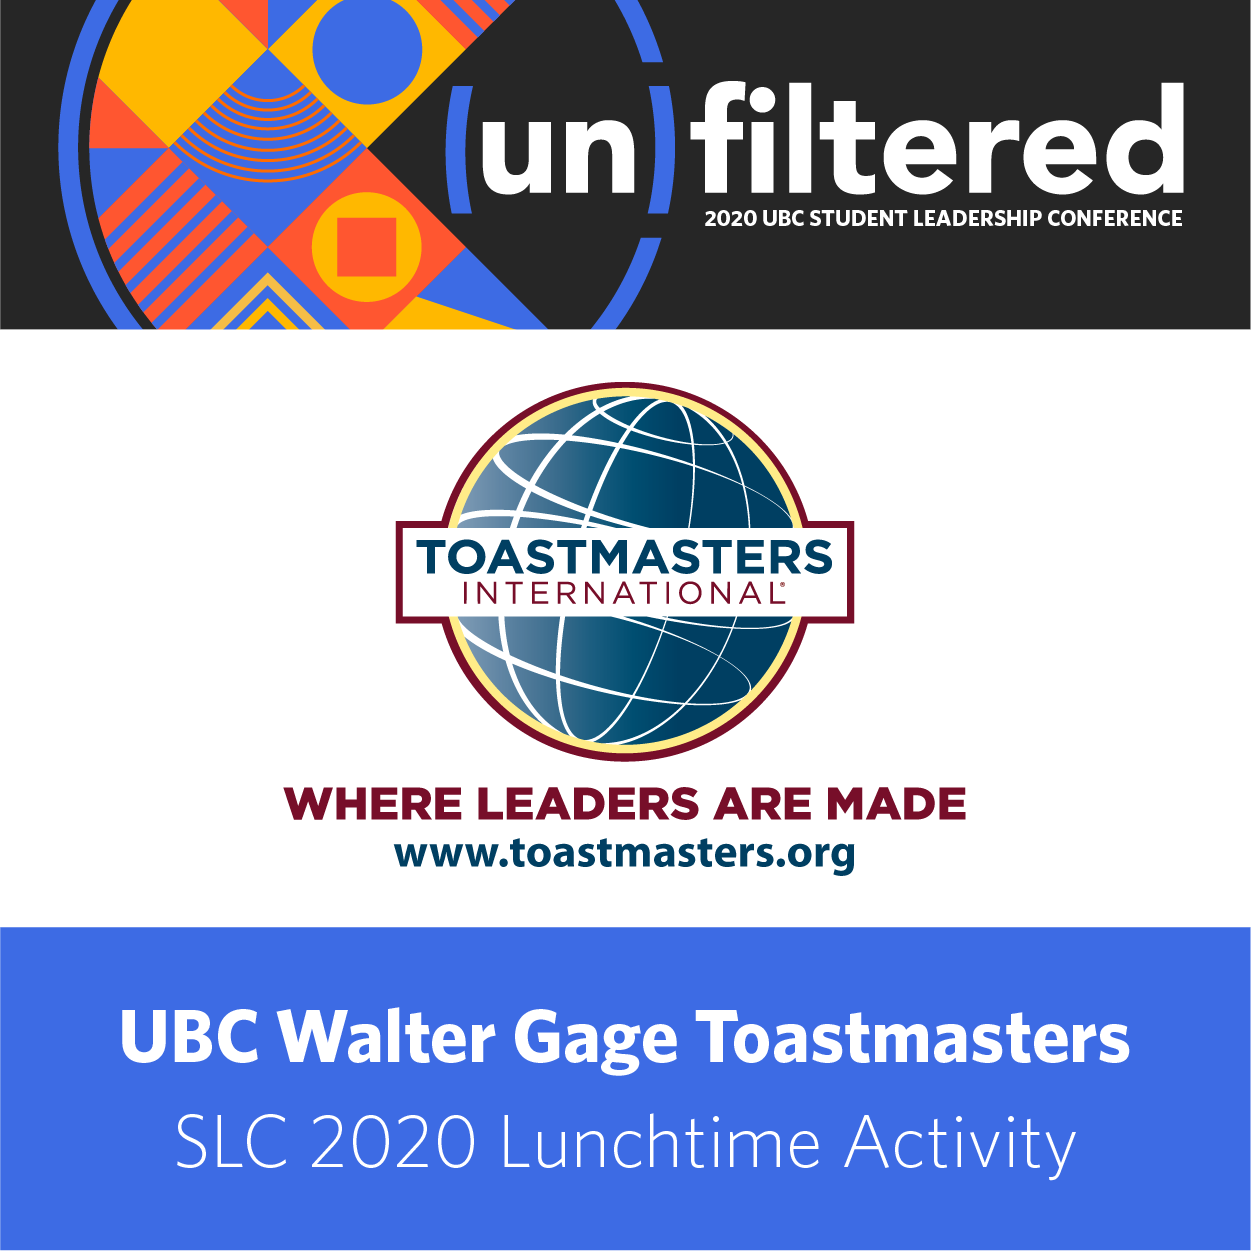 SLC Lunchtime Toastmasters